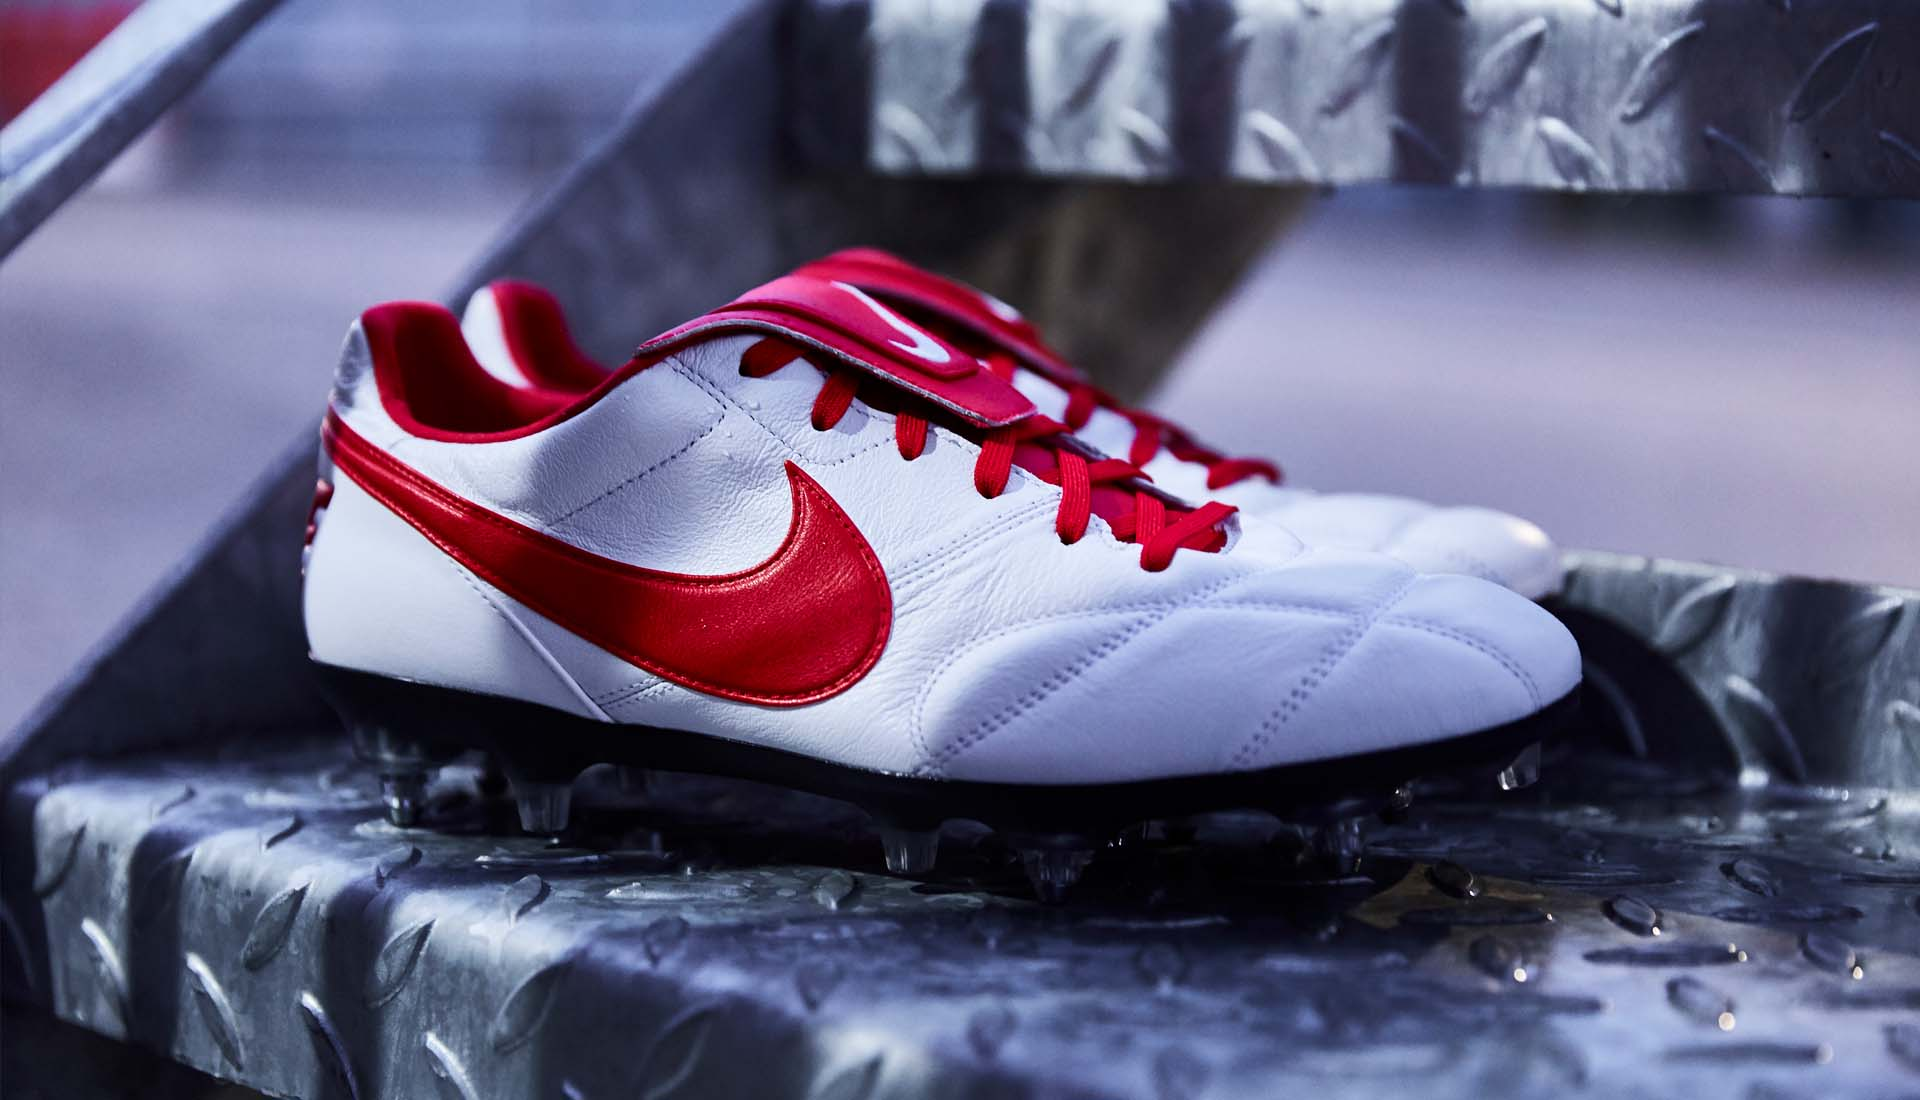 reputable site 1b19c a1c54 2-nike-premier-ii-white-red-min.jpg